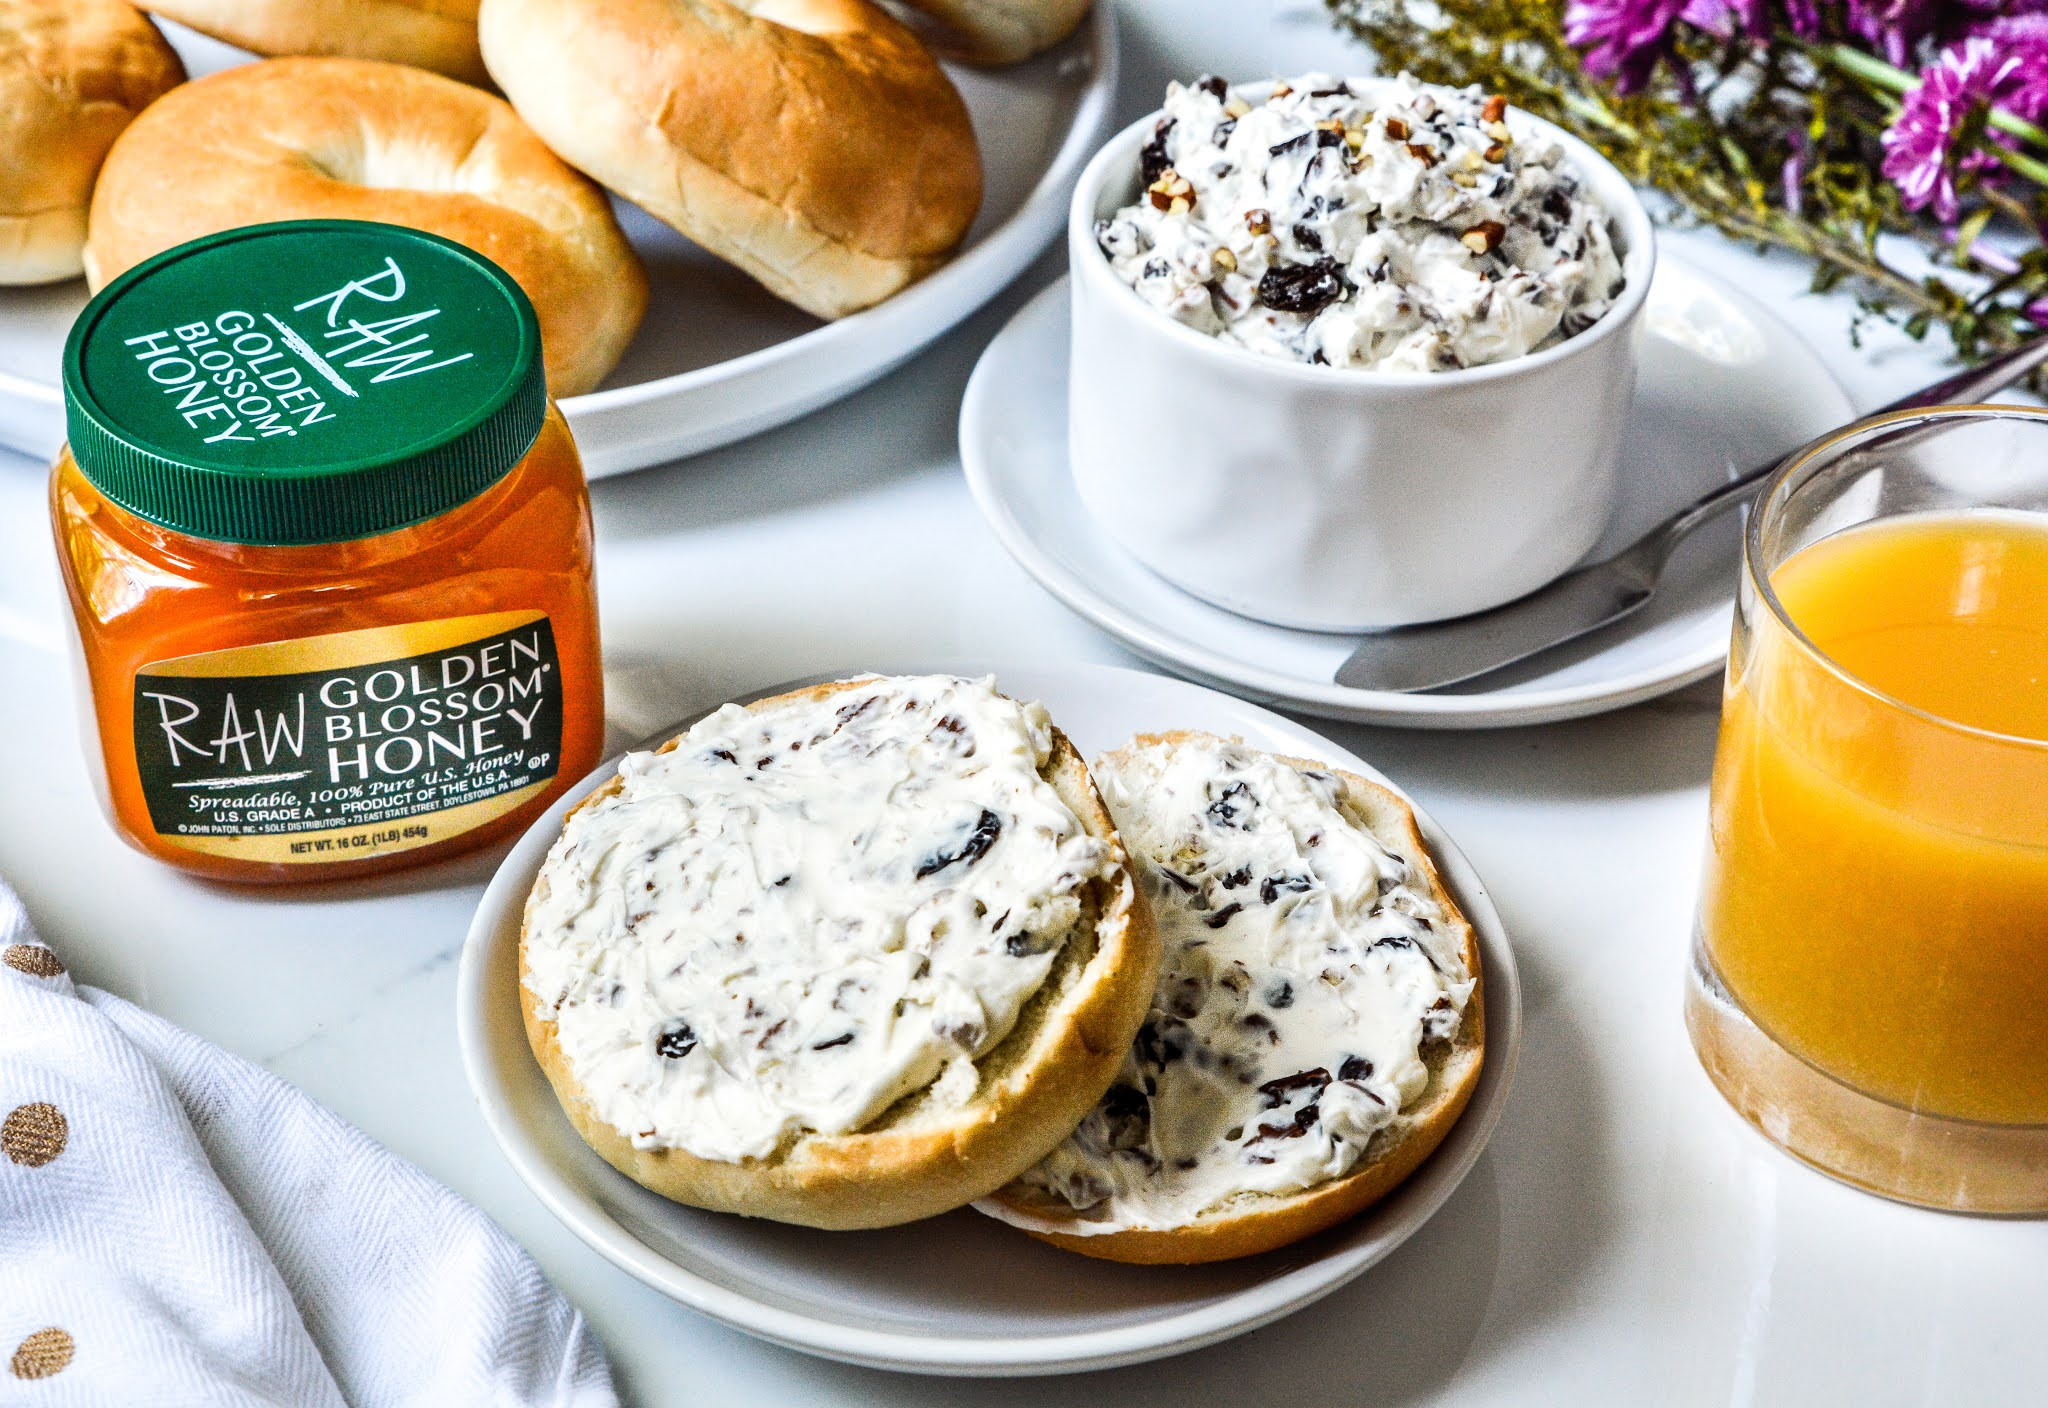 Cream Cheese Raisin Nut Spread